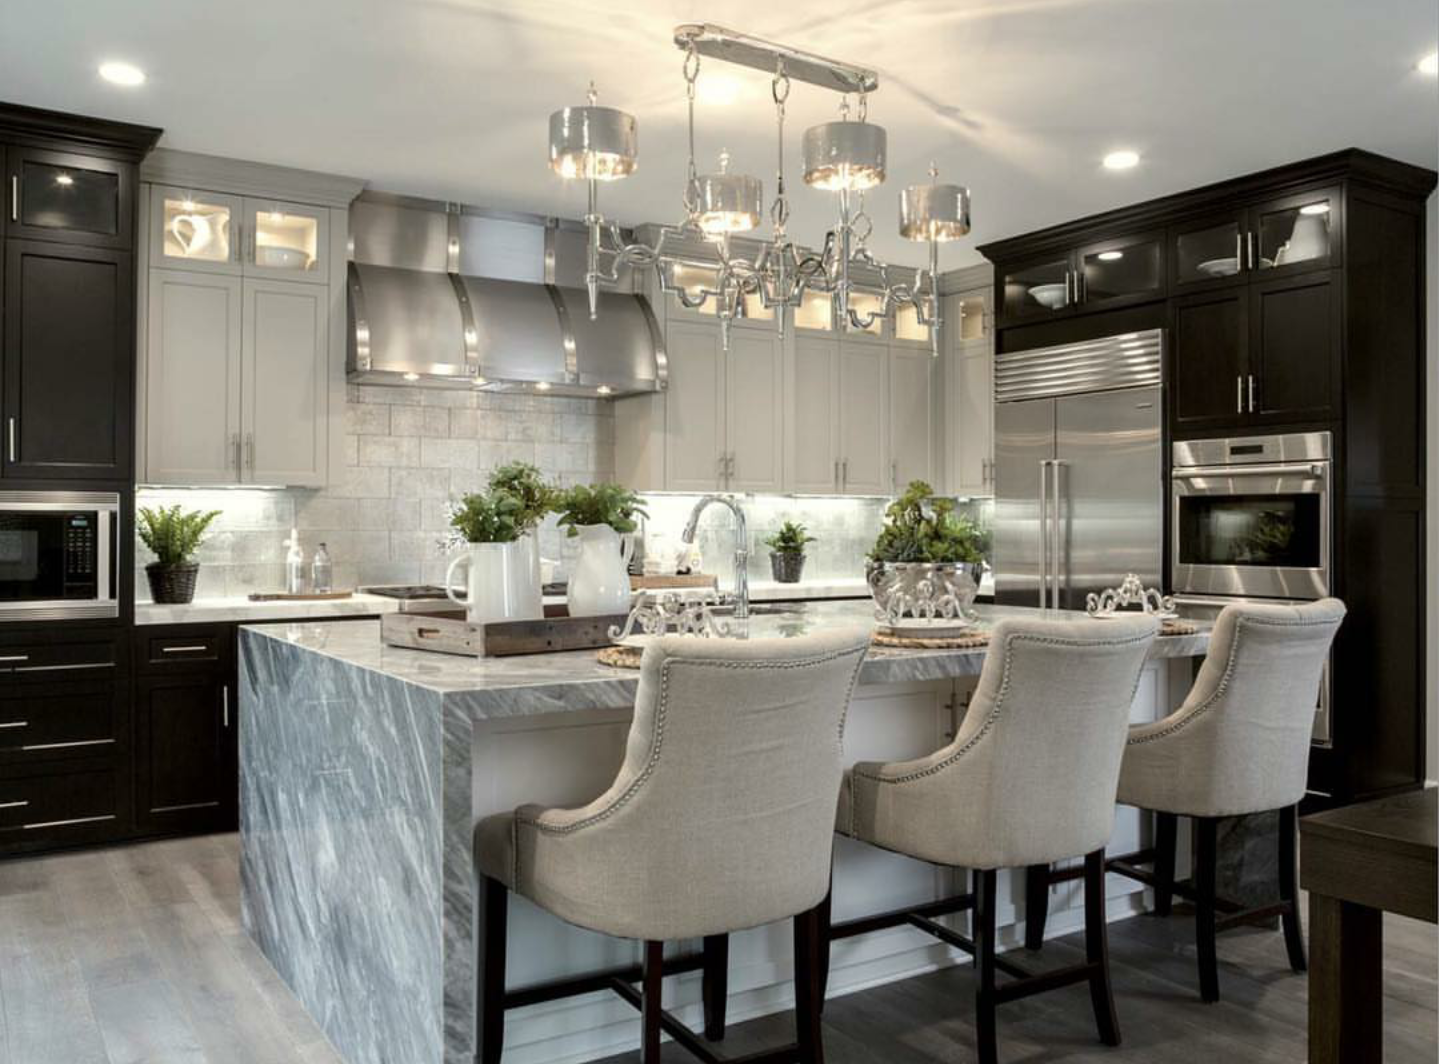 Accent Lighting:  It's the jewelry to give your space that designer look.It's normally there to highlight objects or architectural elements in a space.   Accent lights is a simple way to enhance the atmosphere of any room. Keep in mind you shouldn't completely relay on accent lighting as your main source of light.  Credit: Designlinesd